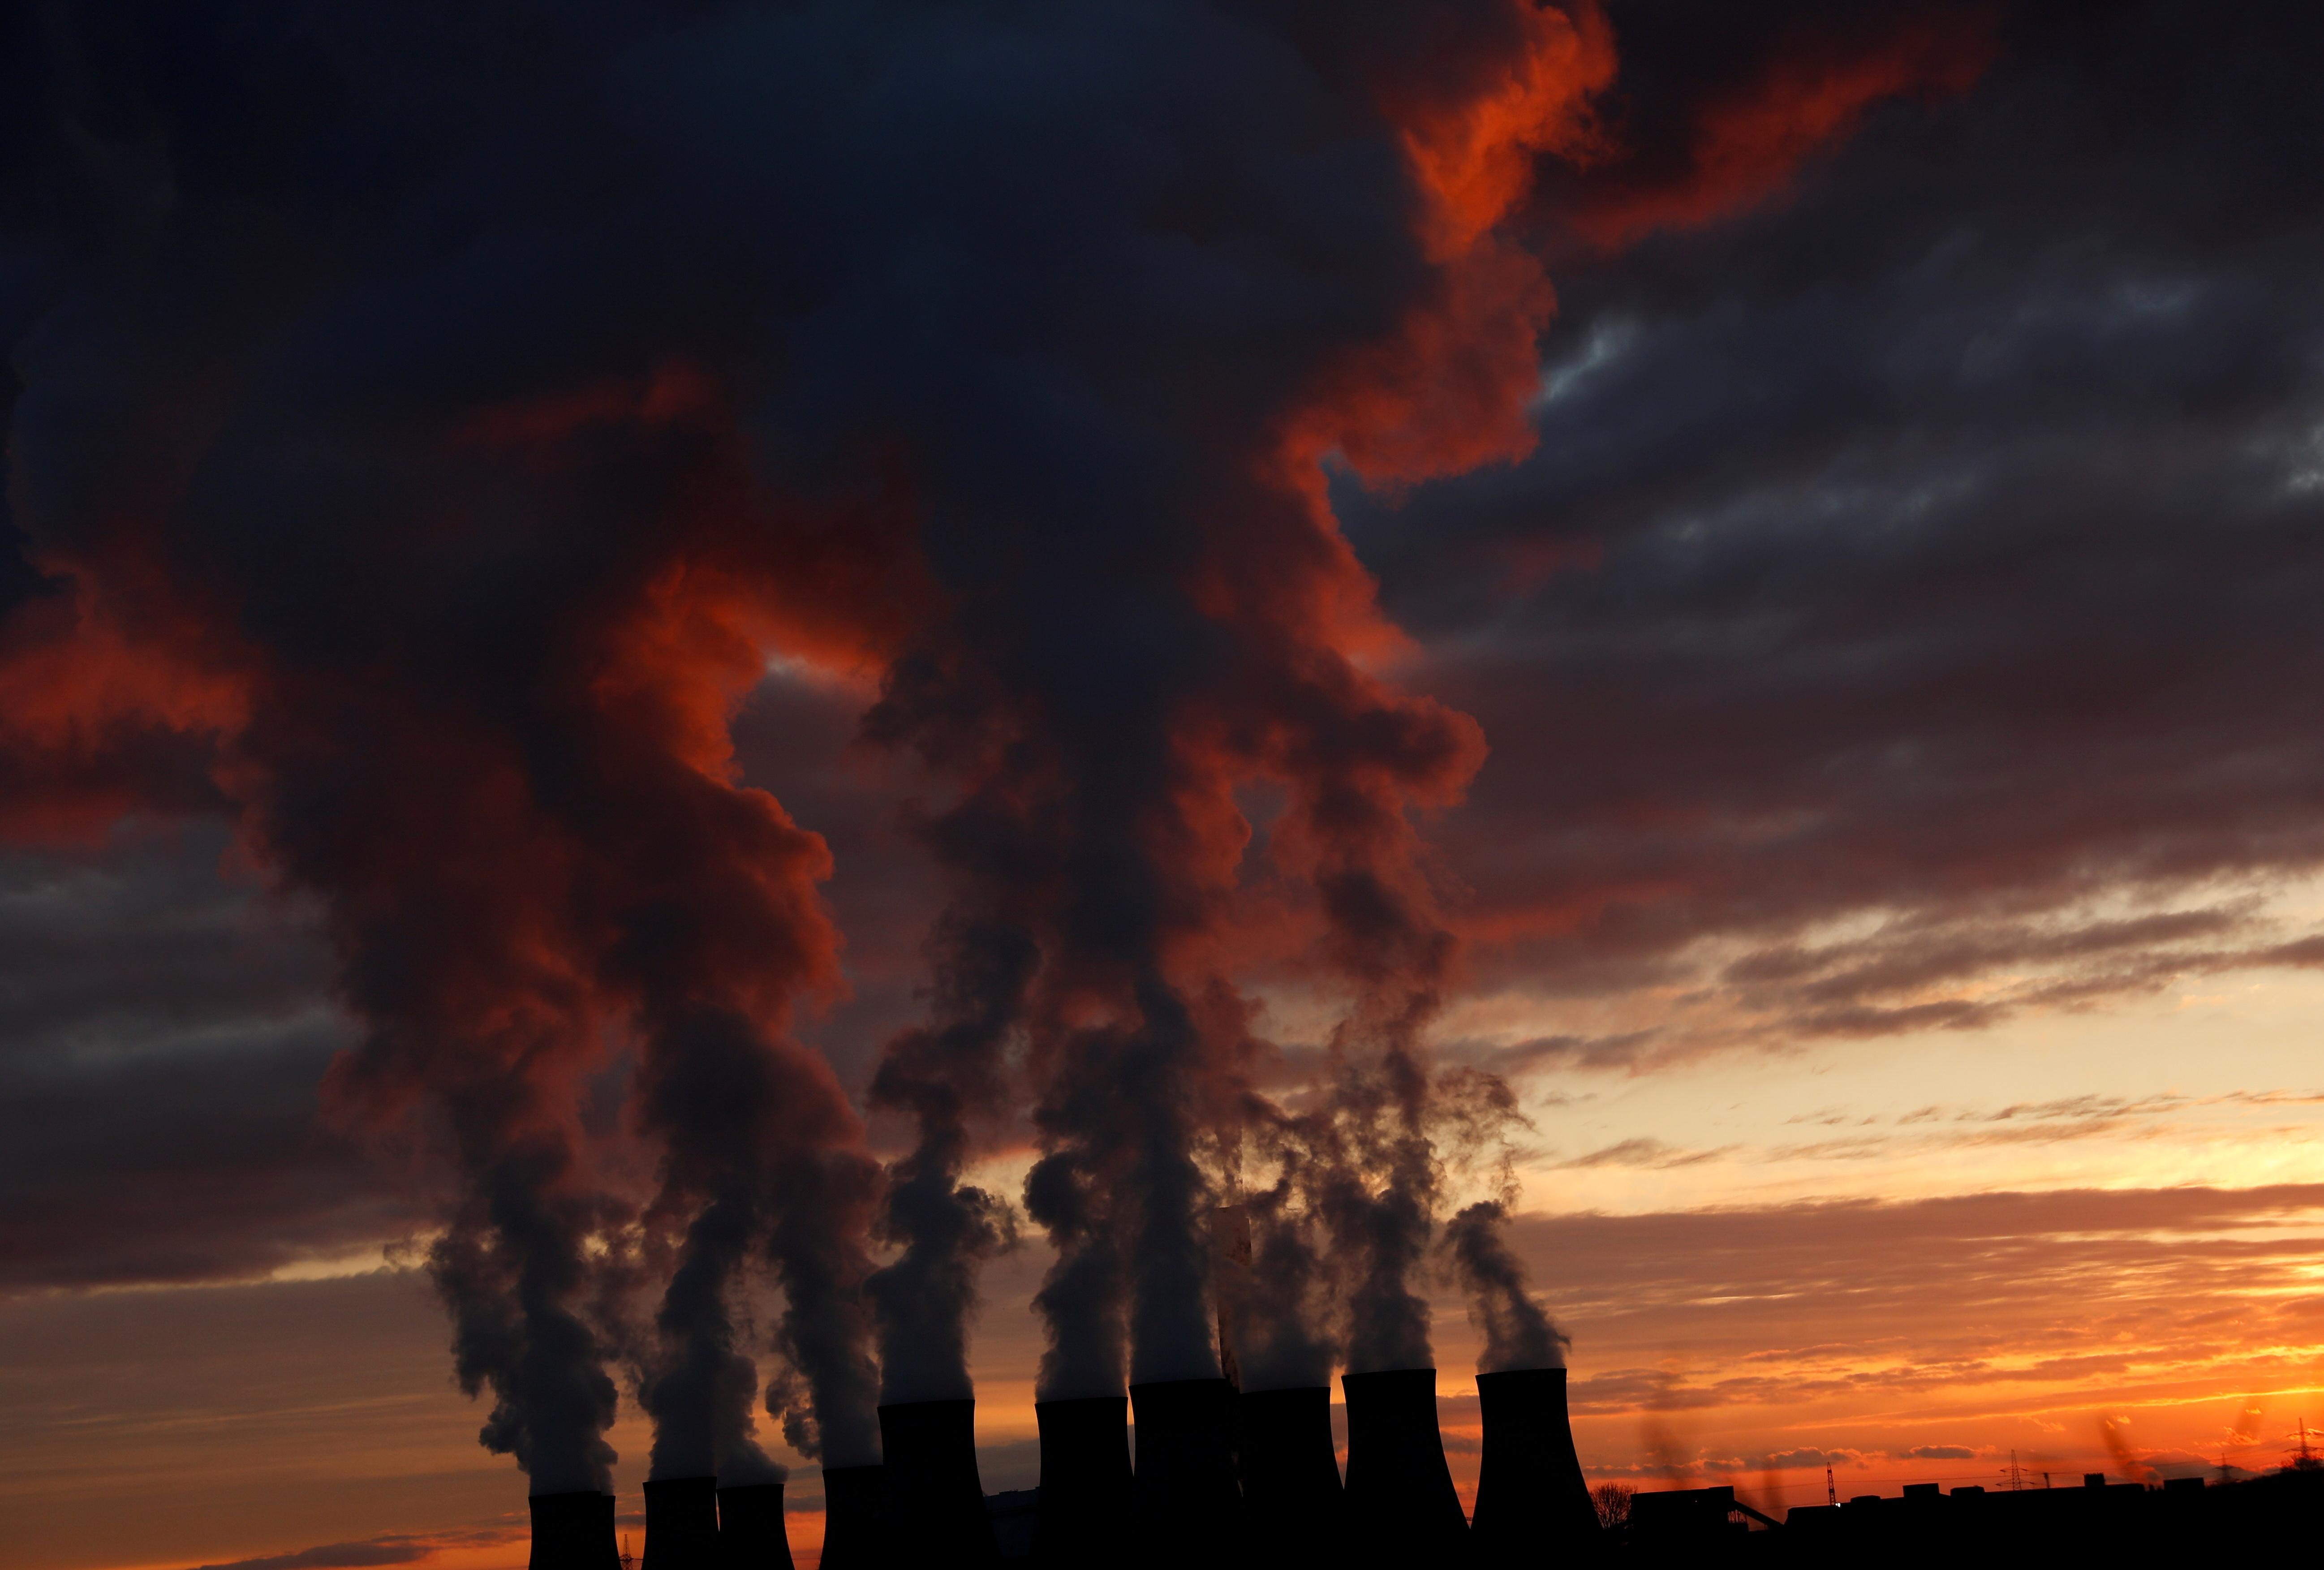 Drax power station is pictured during the sunset in Drax, North Yorkshire, Britain, November 27, 2020. REUTERS/Lee Smith/File Photo